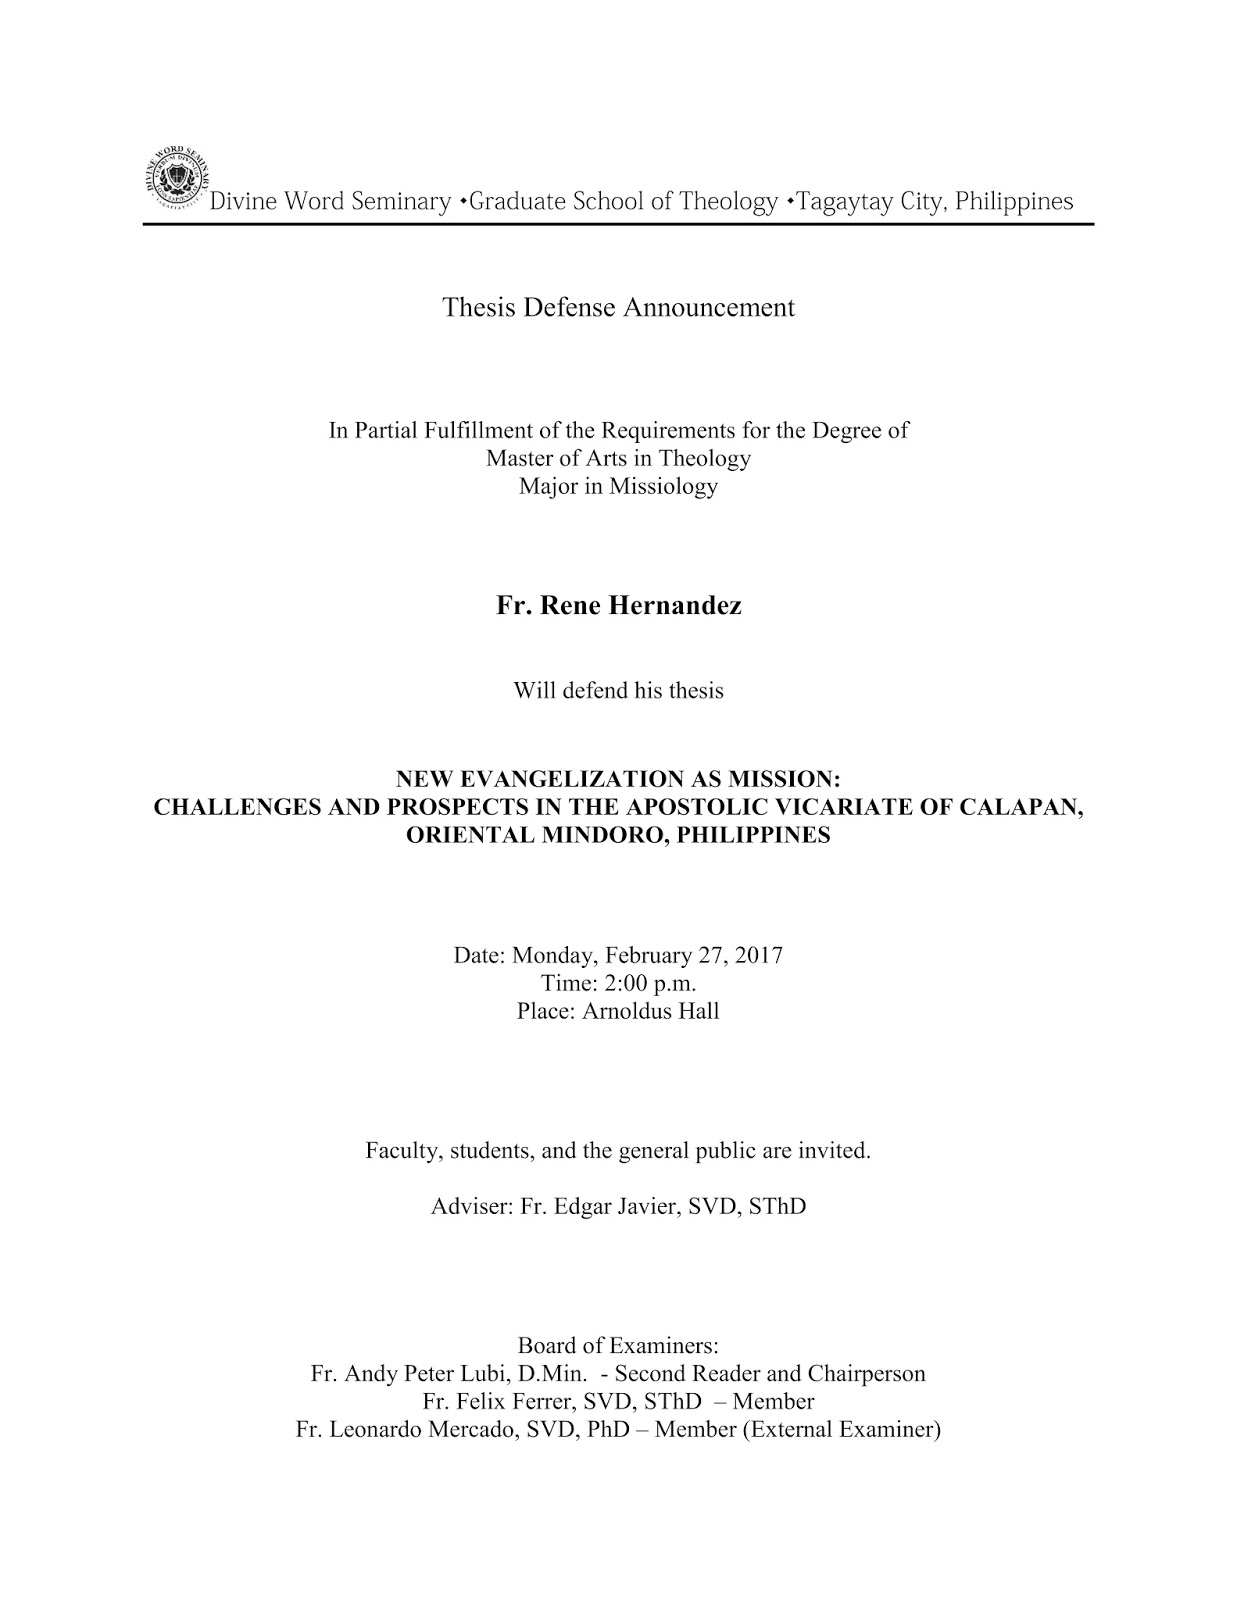 ma thesis defense